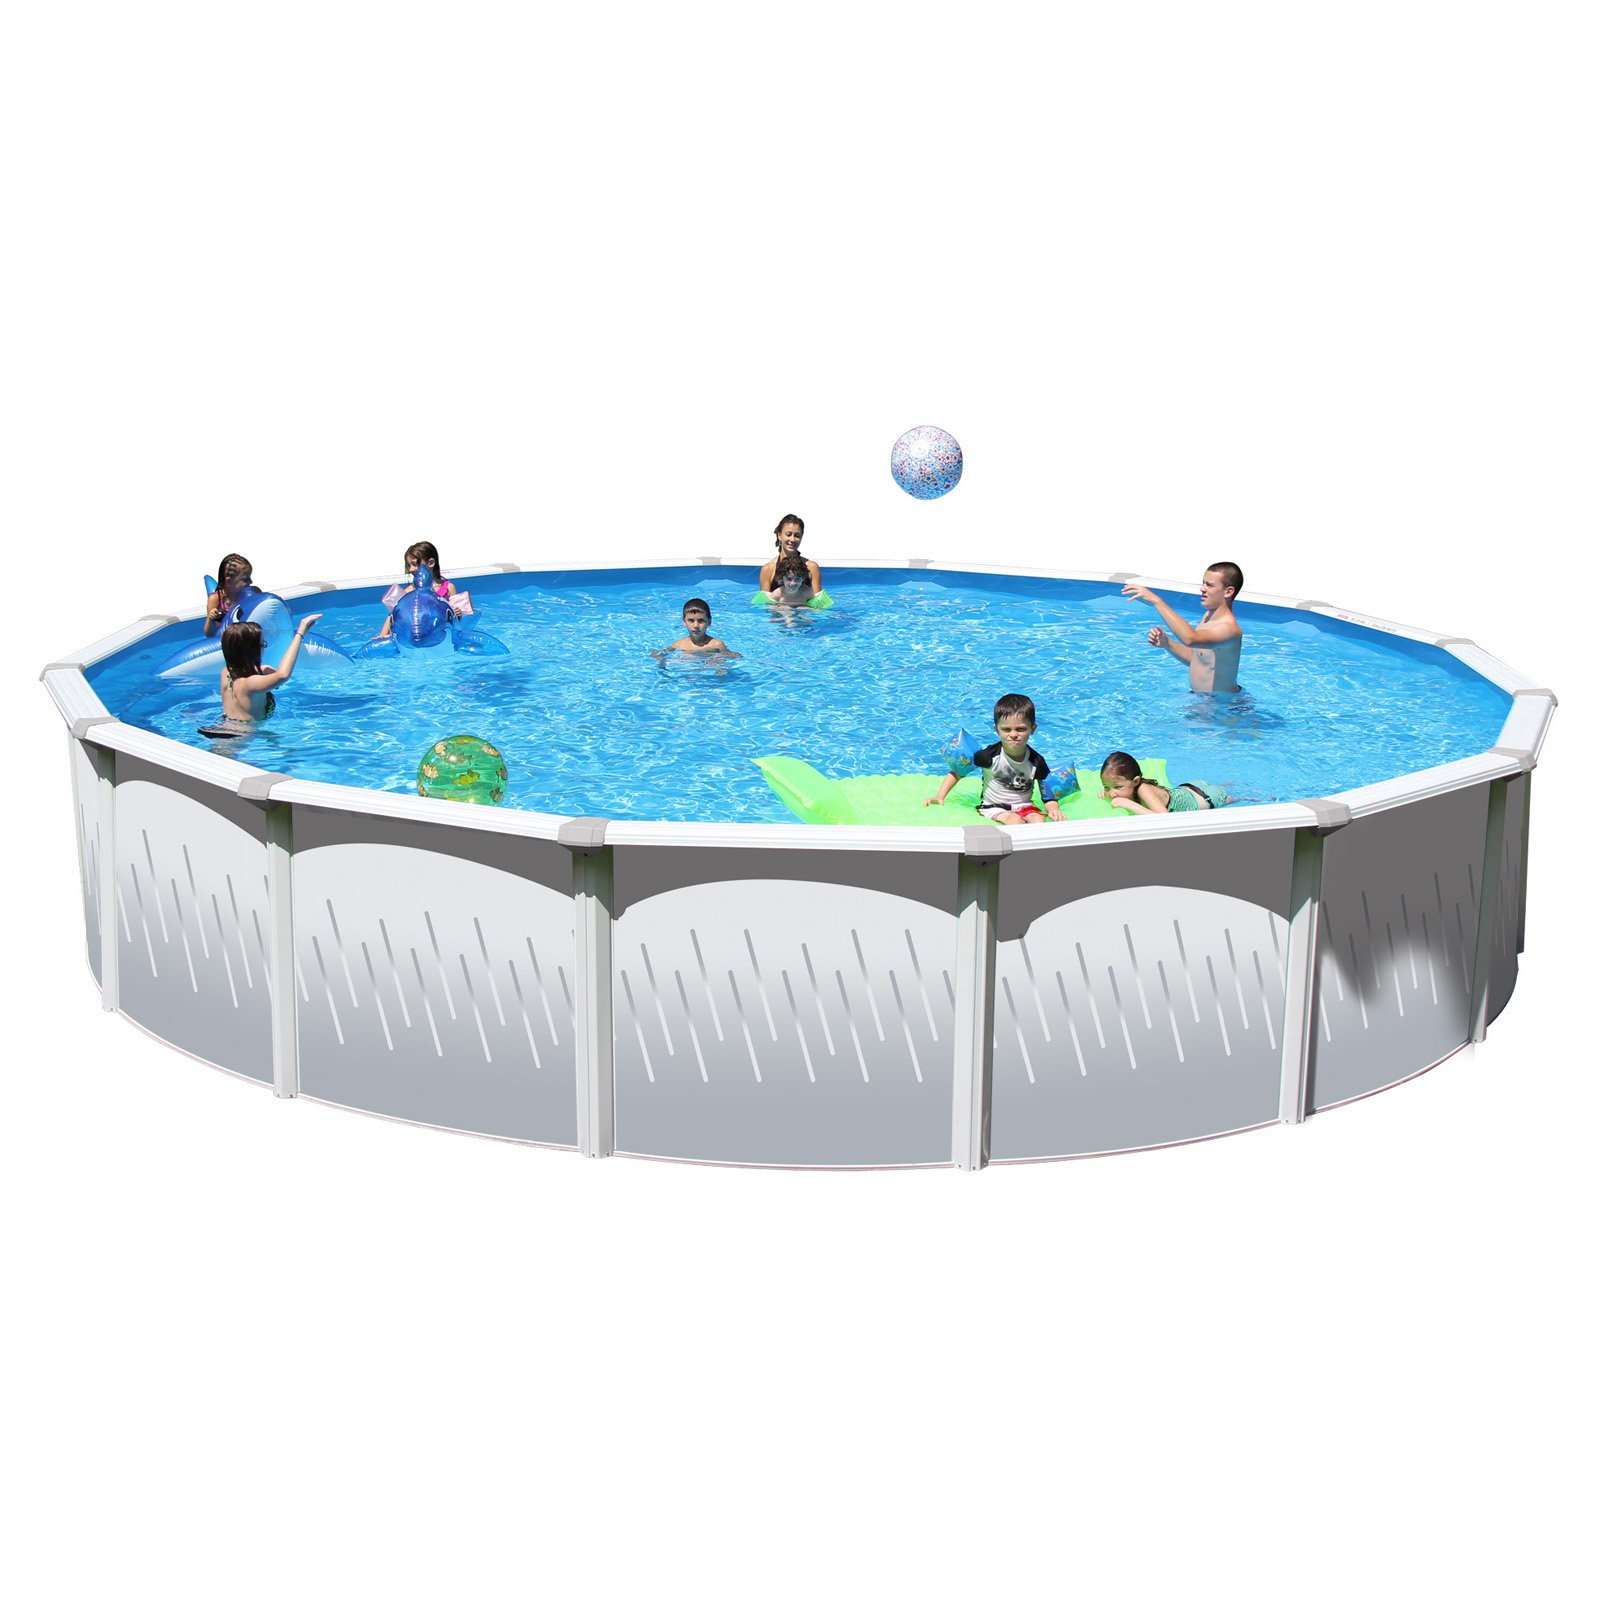 """Heritage Taos 27' x 52""""Steel Wall Above Ground Swimming Pool by Heritage"""